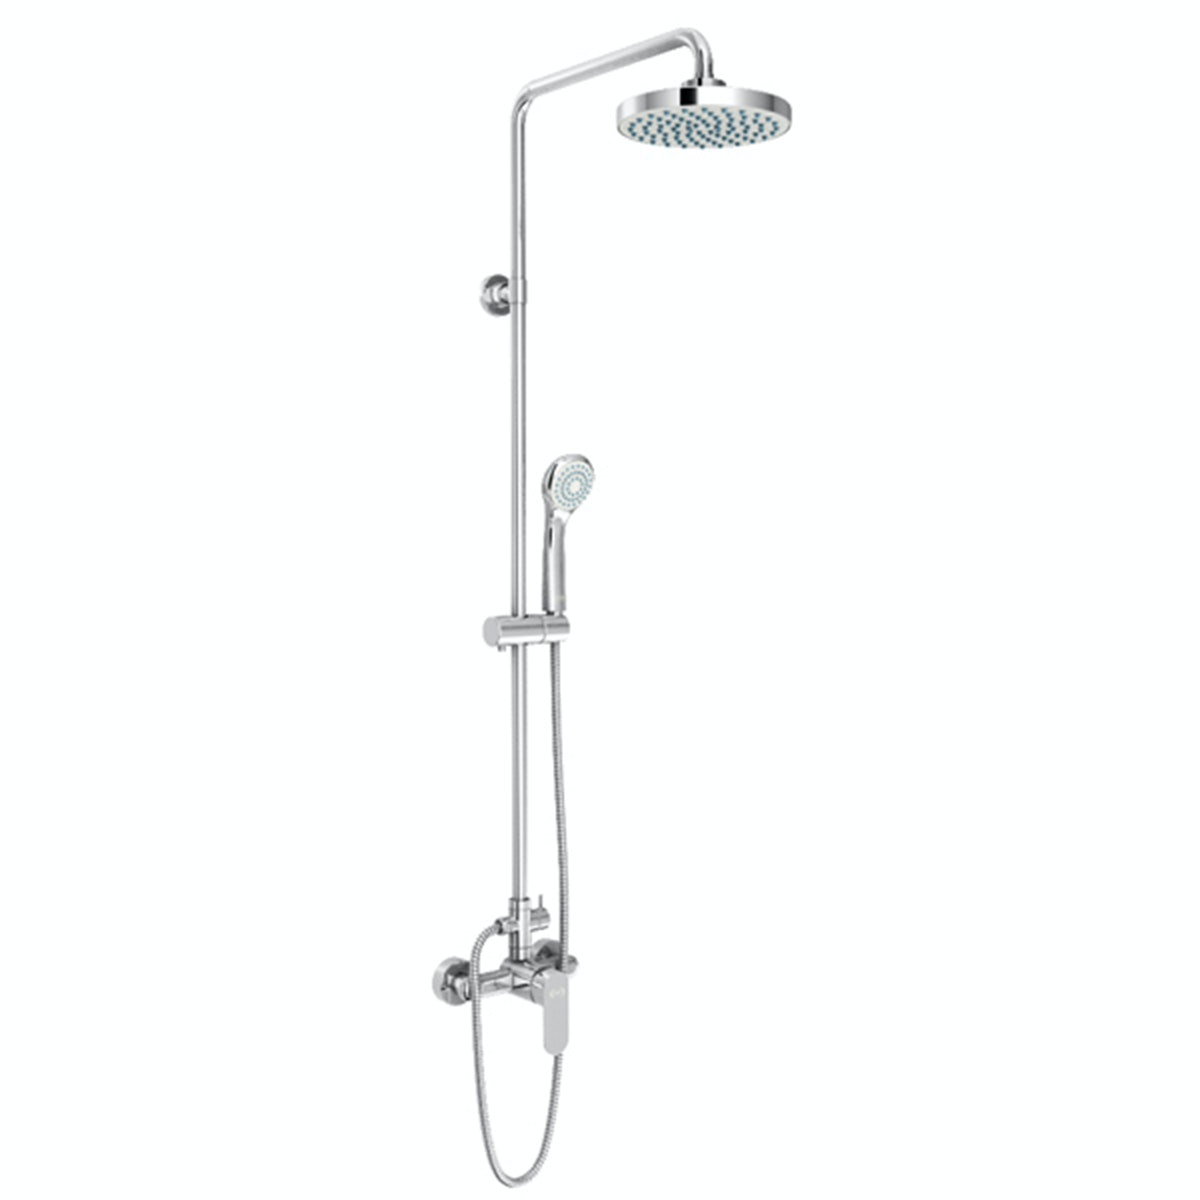 AER Mixer Shower Set Complete Panas-Dingin/Mixer Shower Set Complete MS-1